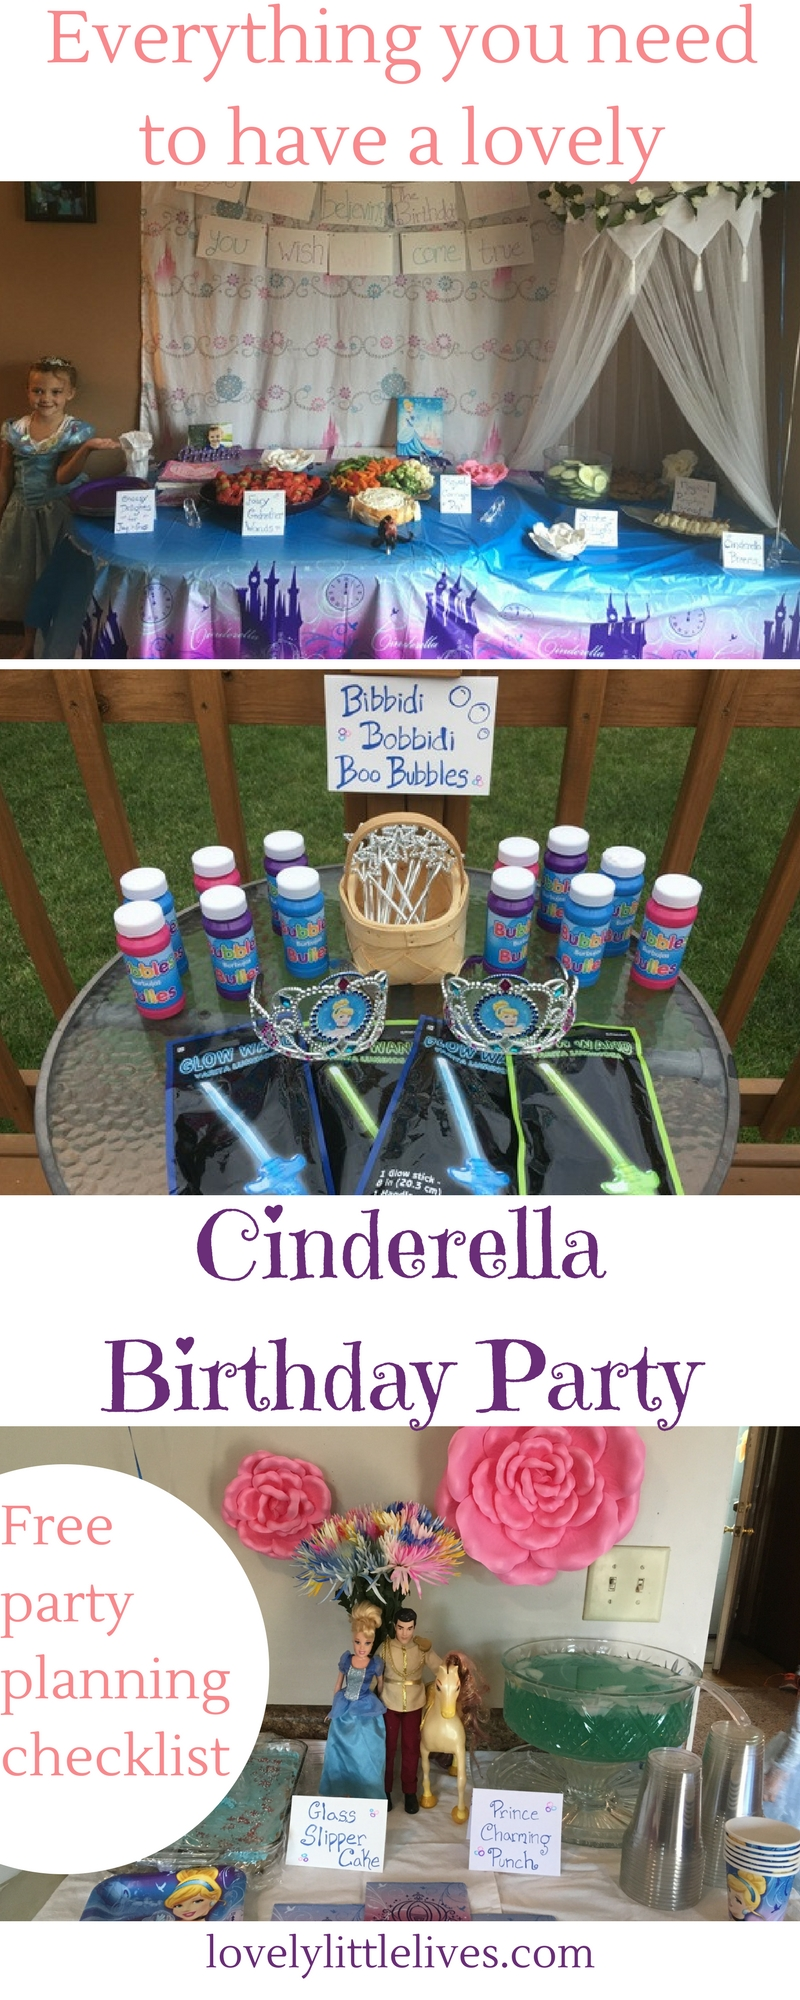 Everything you need to have a lovely Cinderella party.